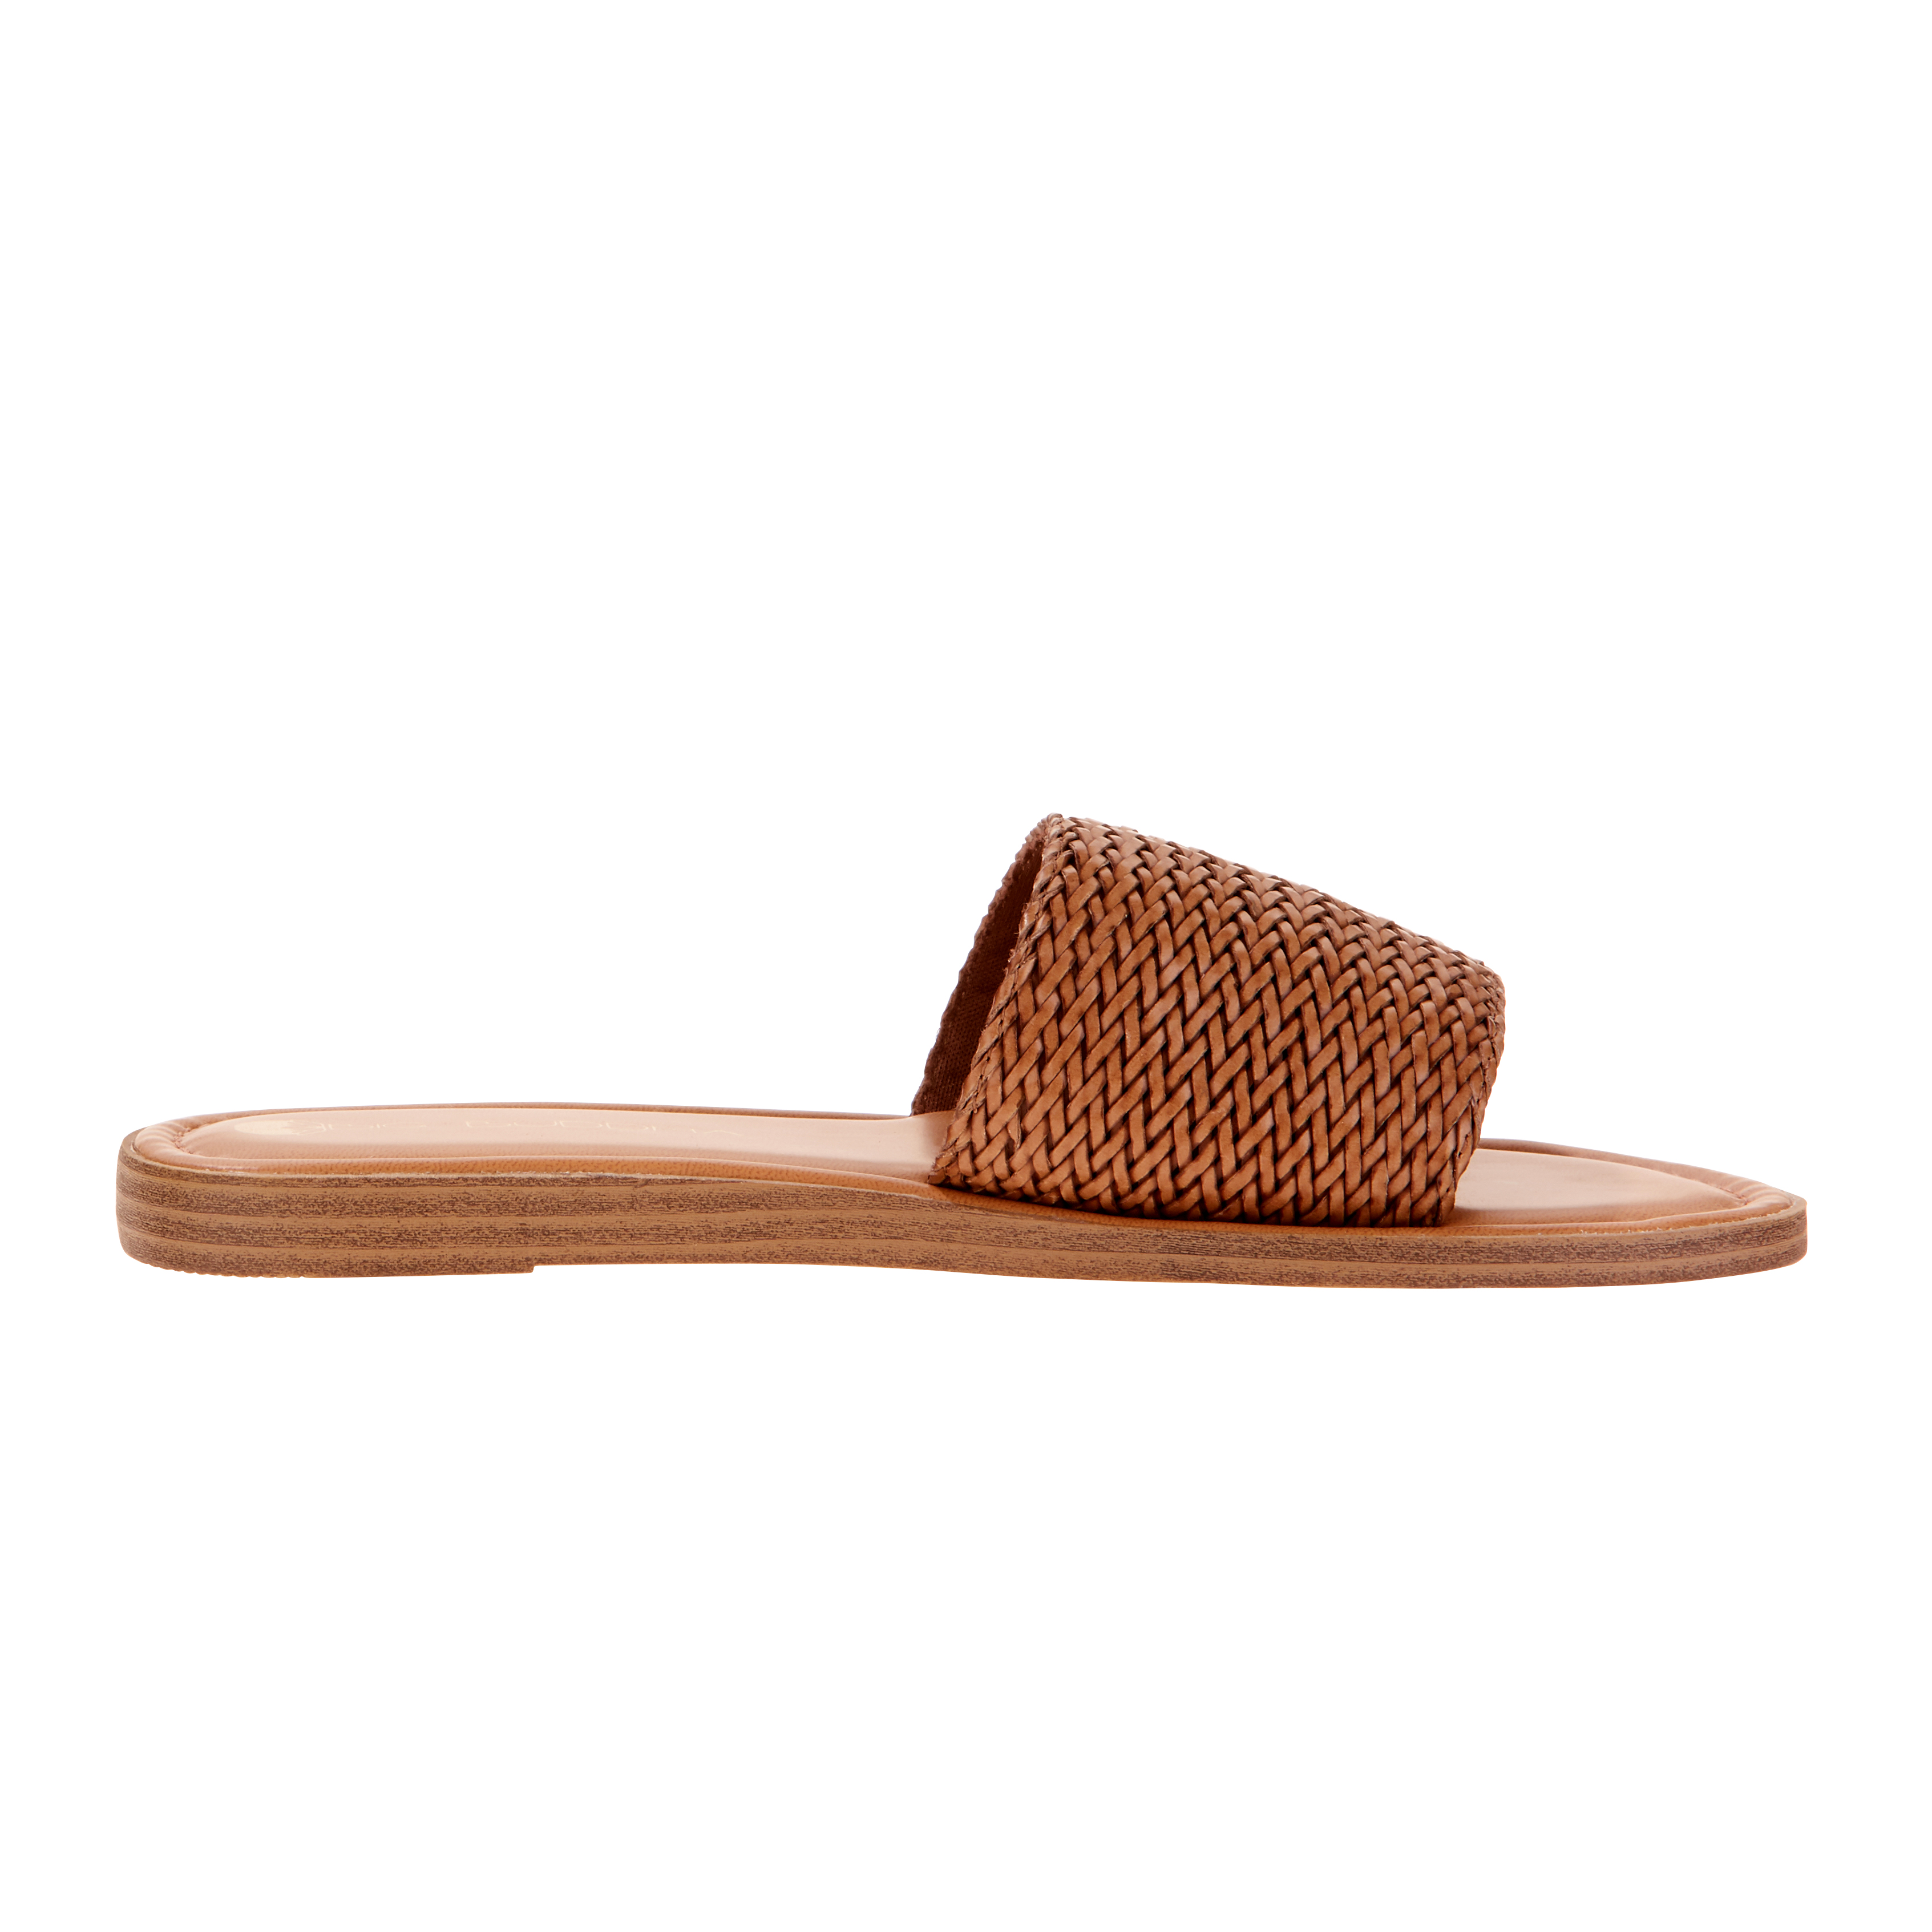 Big Buddha Women's Woven Slide Sandal by Big Buddha